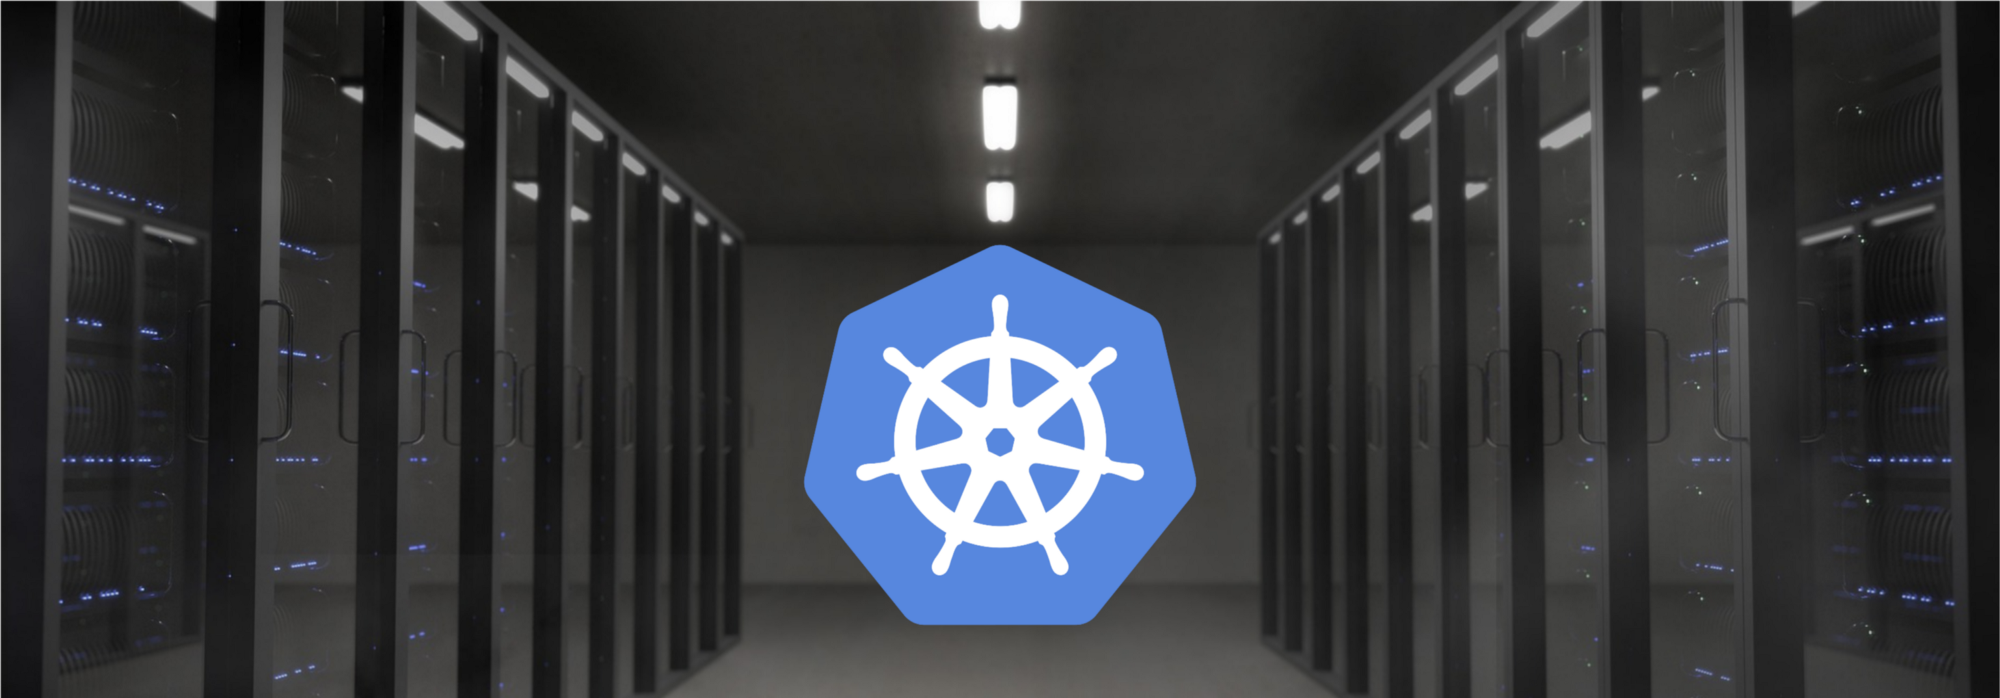 Picture of the Kubernetes logo in a data center